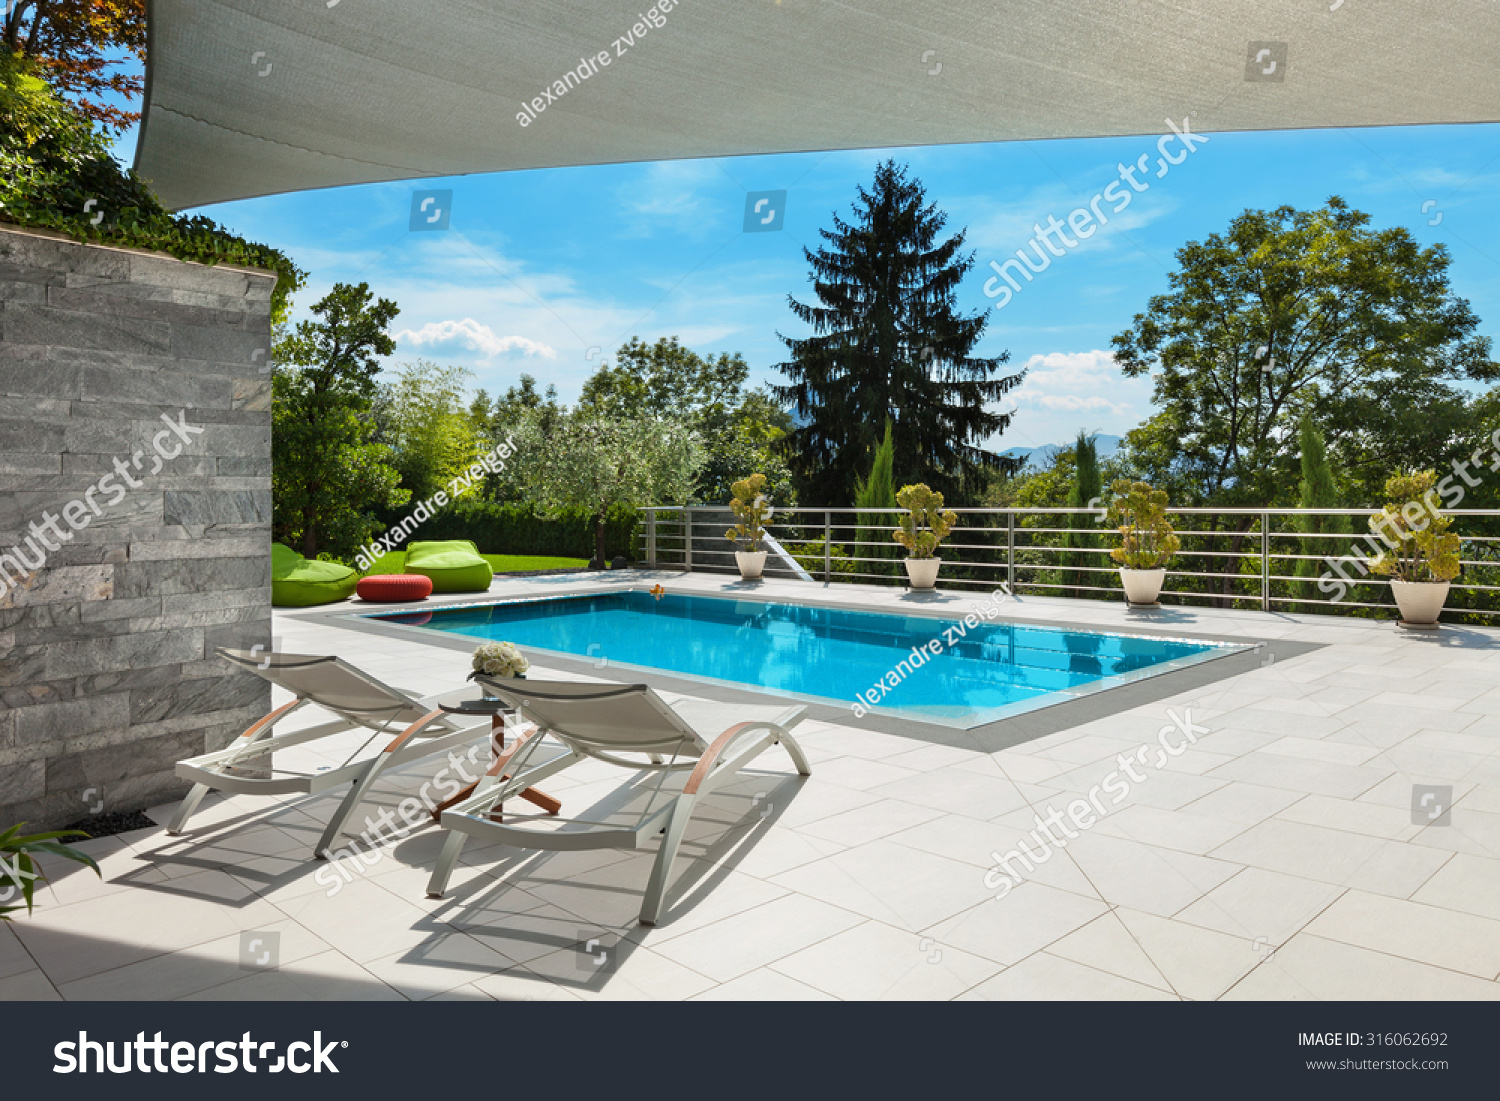 Beautiful house swimming pool view veranda stock photo Swimming pool beautiful